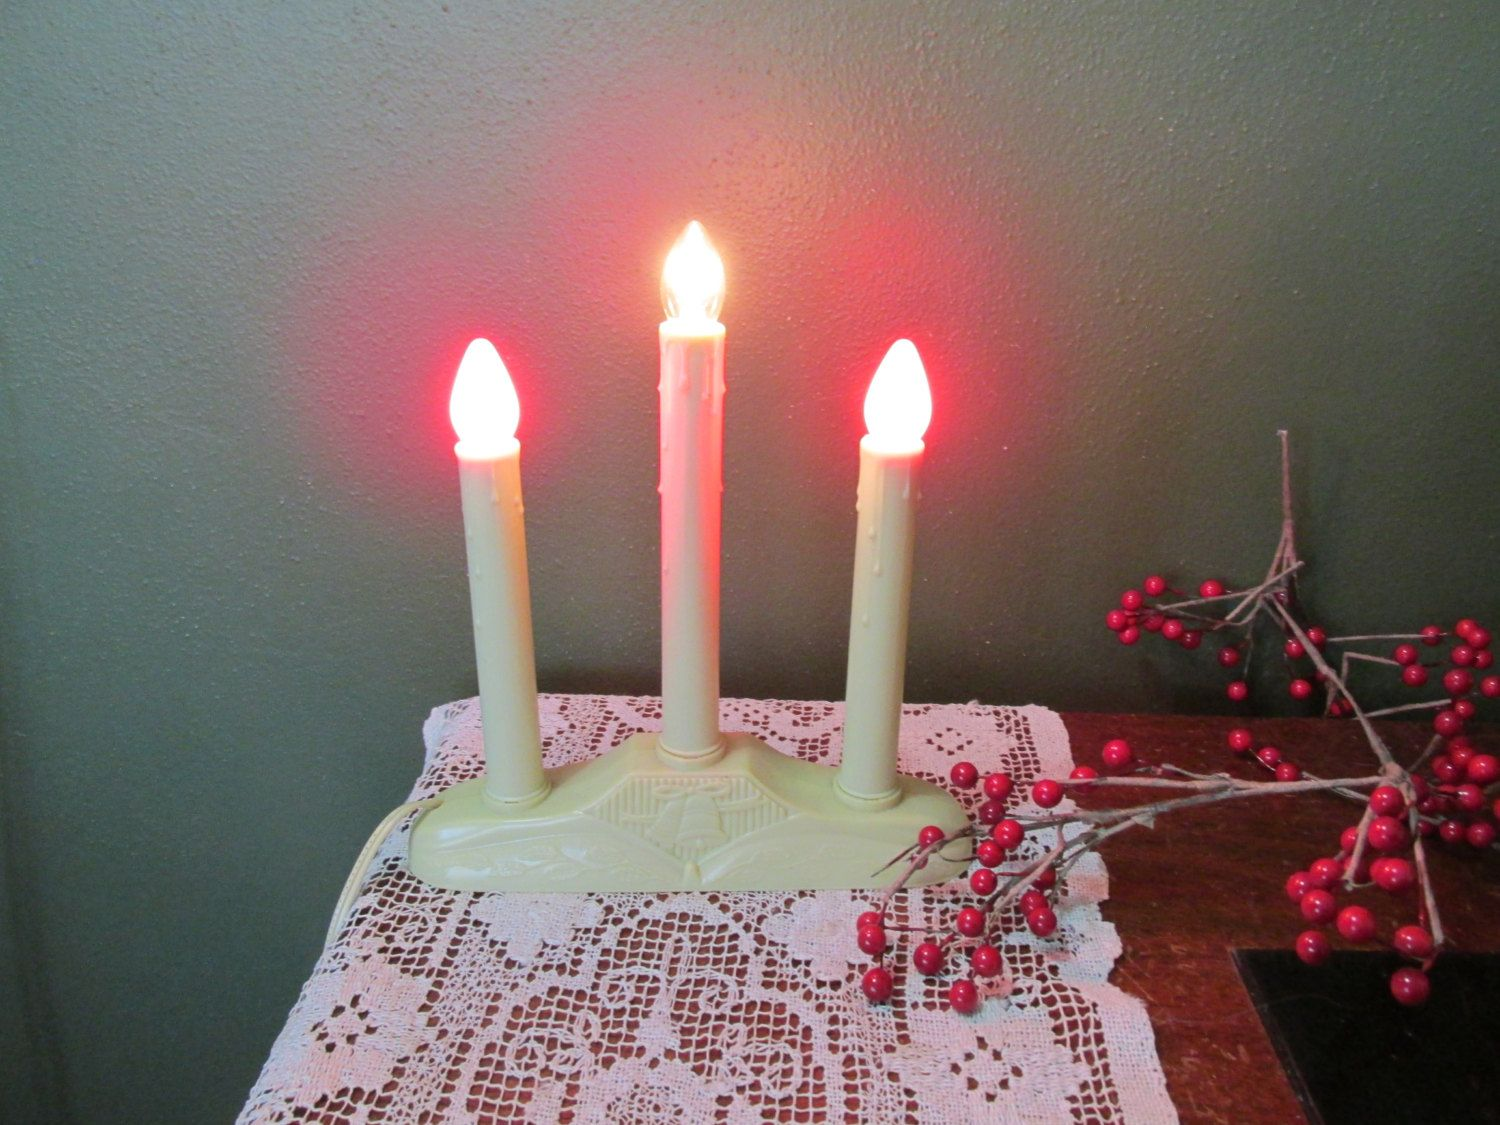 Christmas Candle Candoliers With 3 Electric Candles By LuRuUniques On Etsy